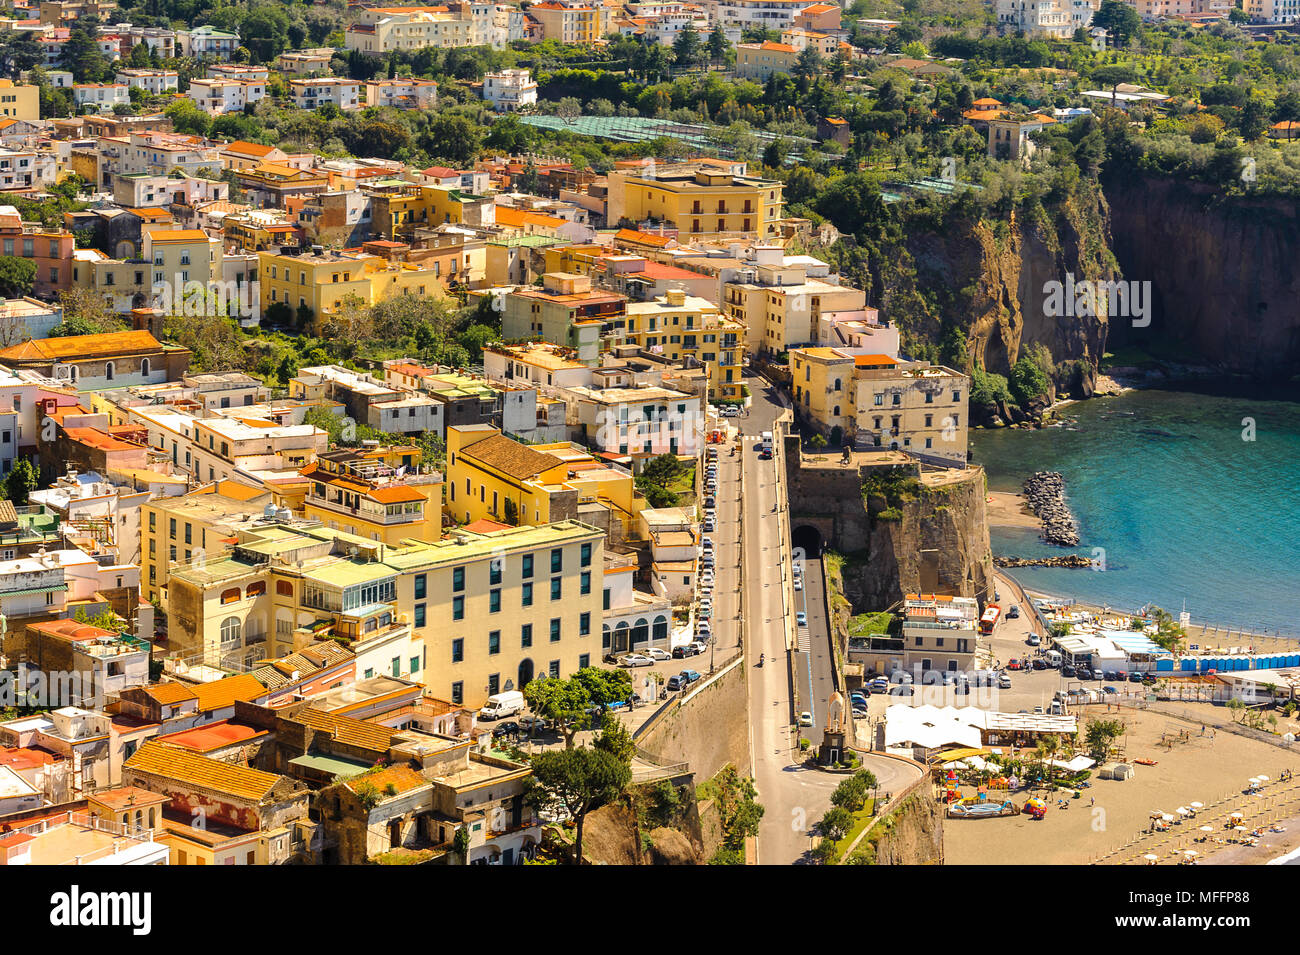 Aerial view of Sorrento, Italy - Stock Image